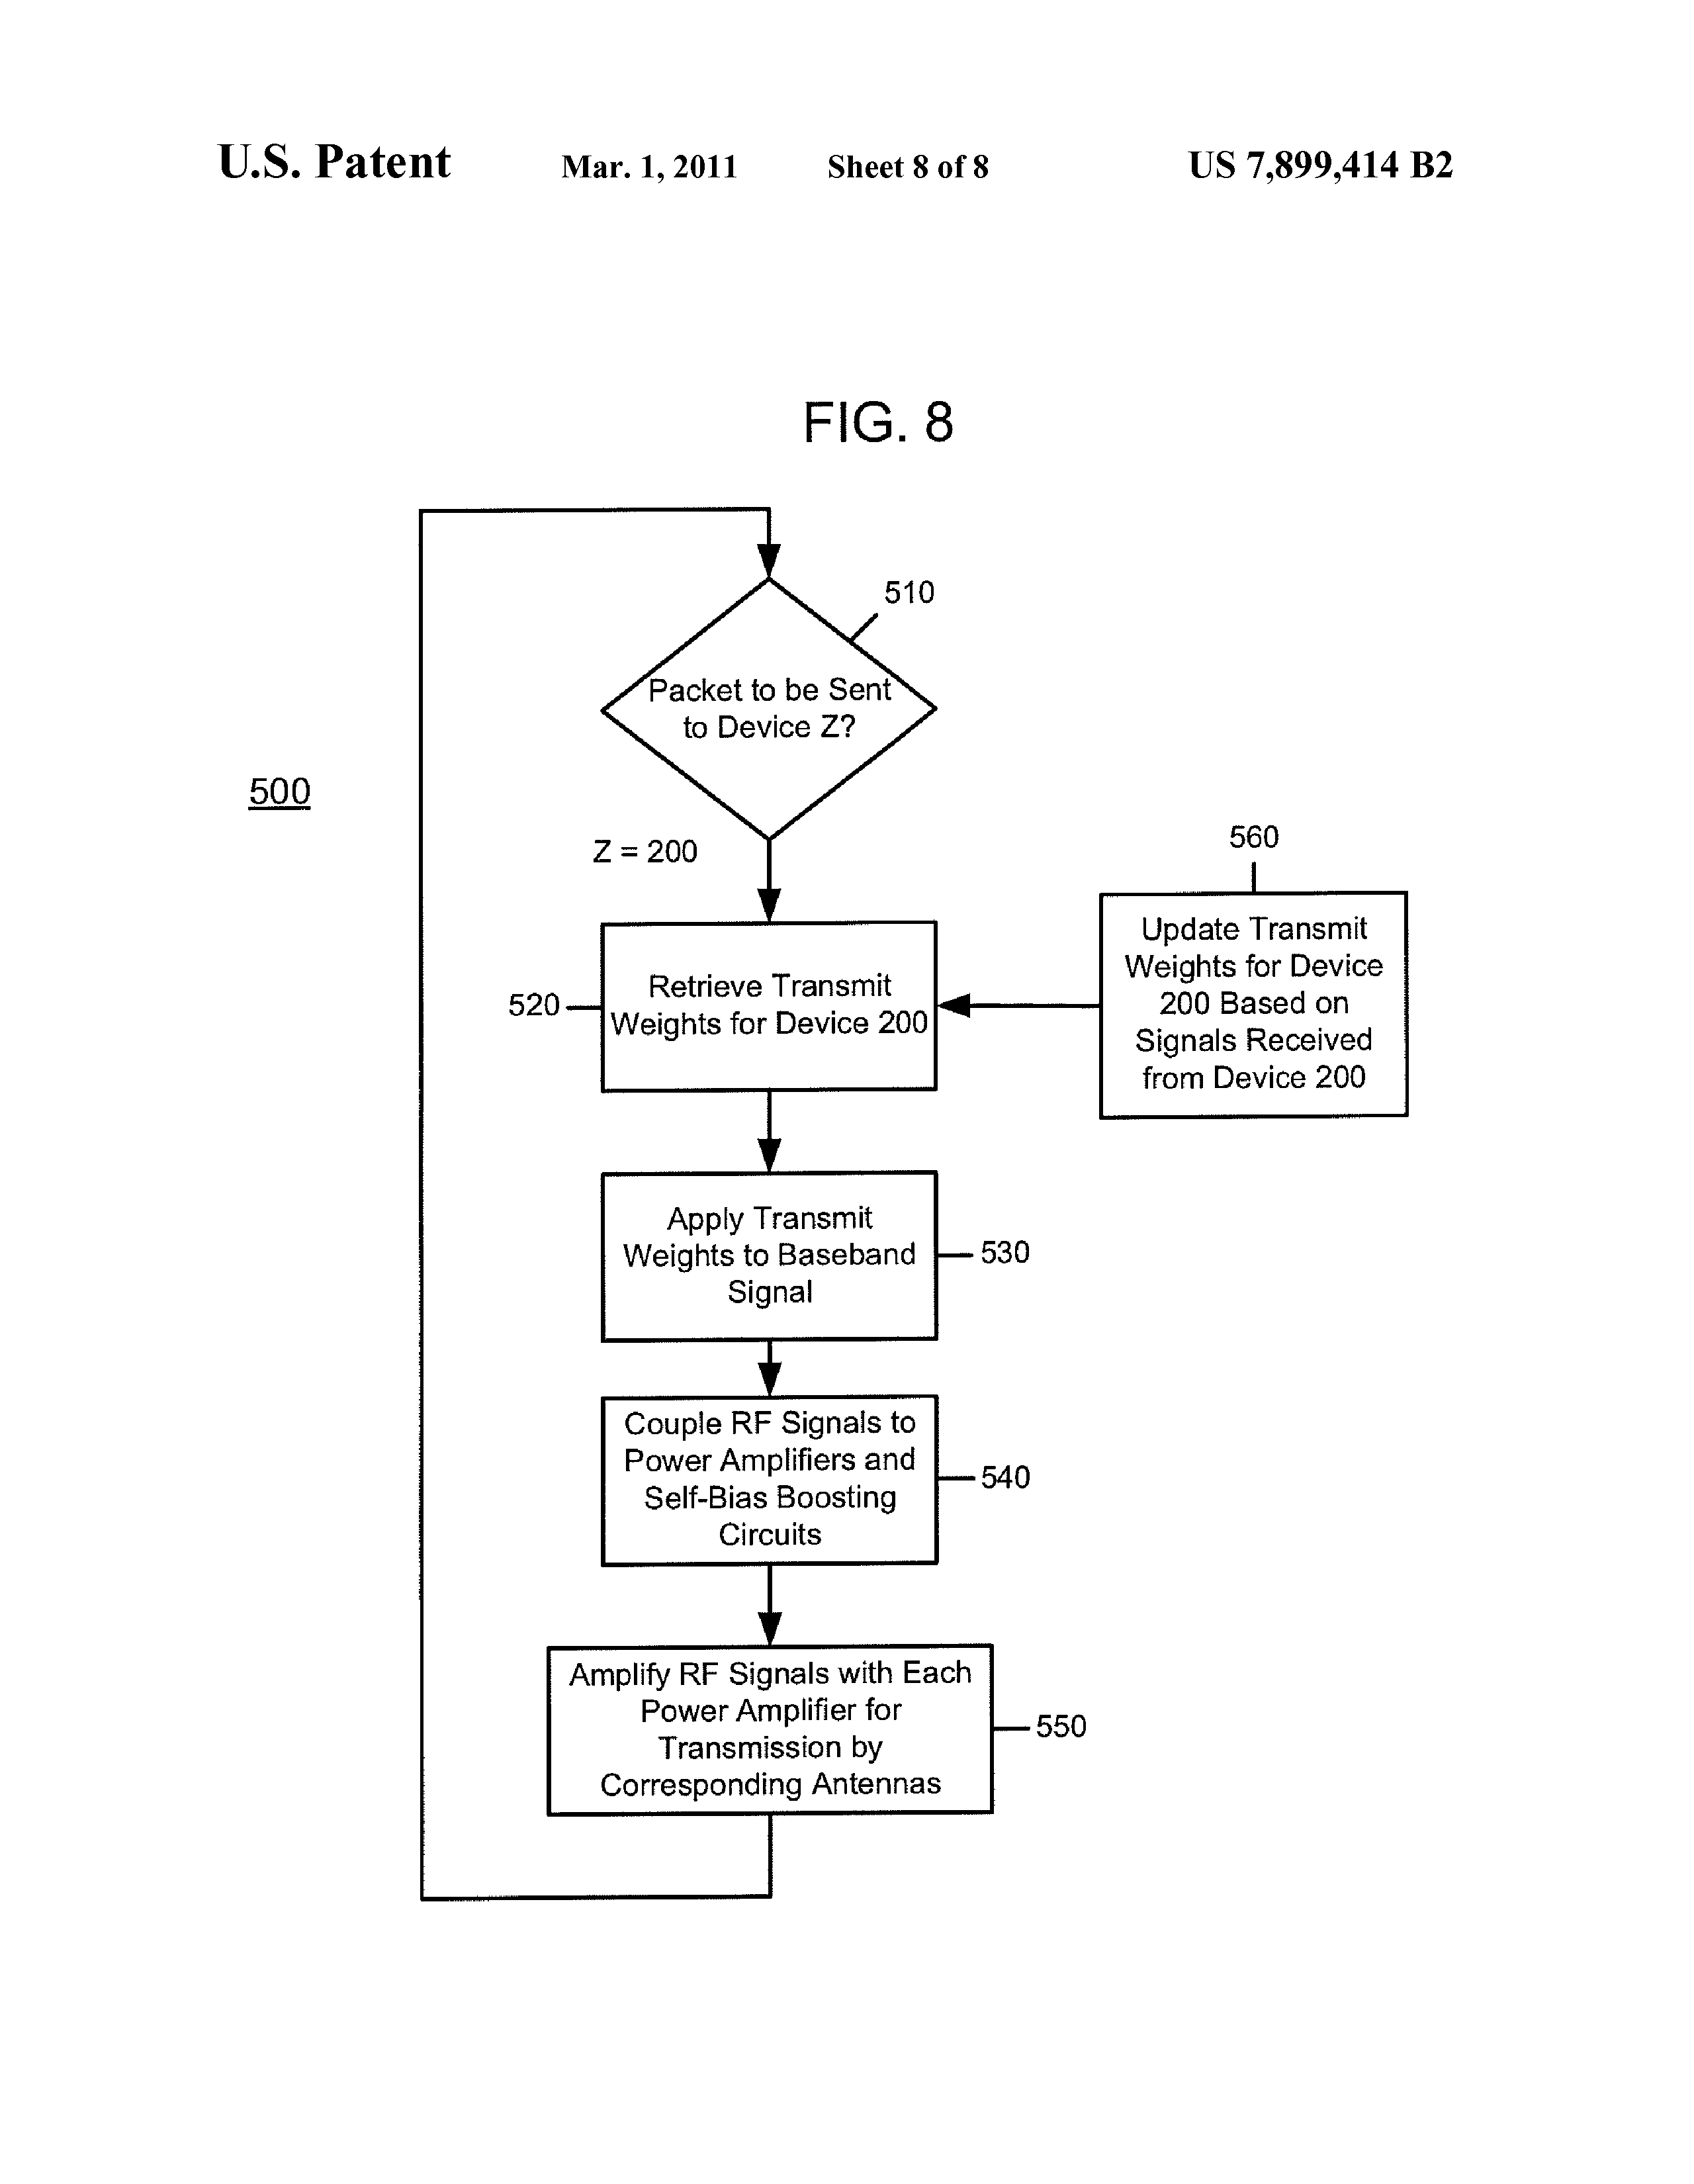 US 7899414 B2 - Control Of Power Amplifiers In Devices Using